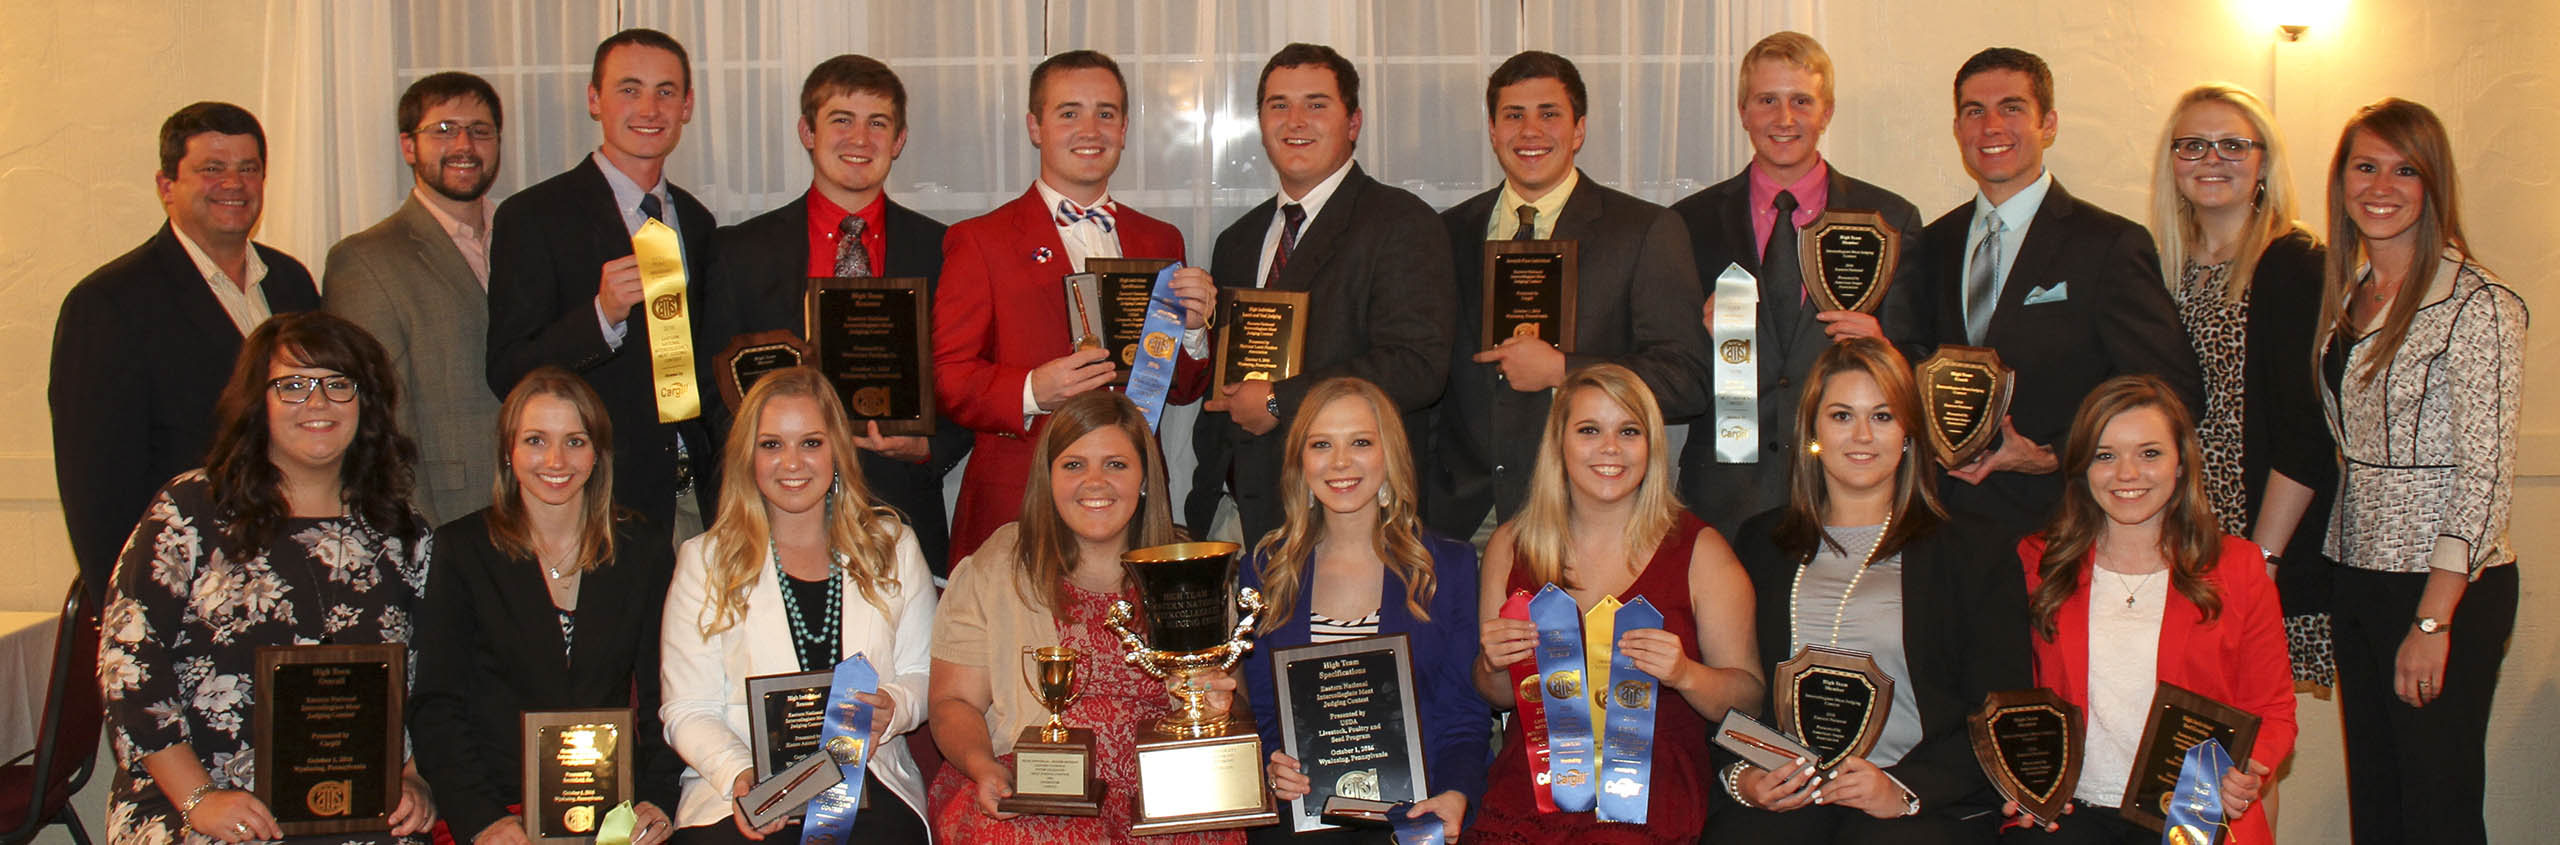 2016 Eastern National Meat Judging Results